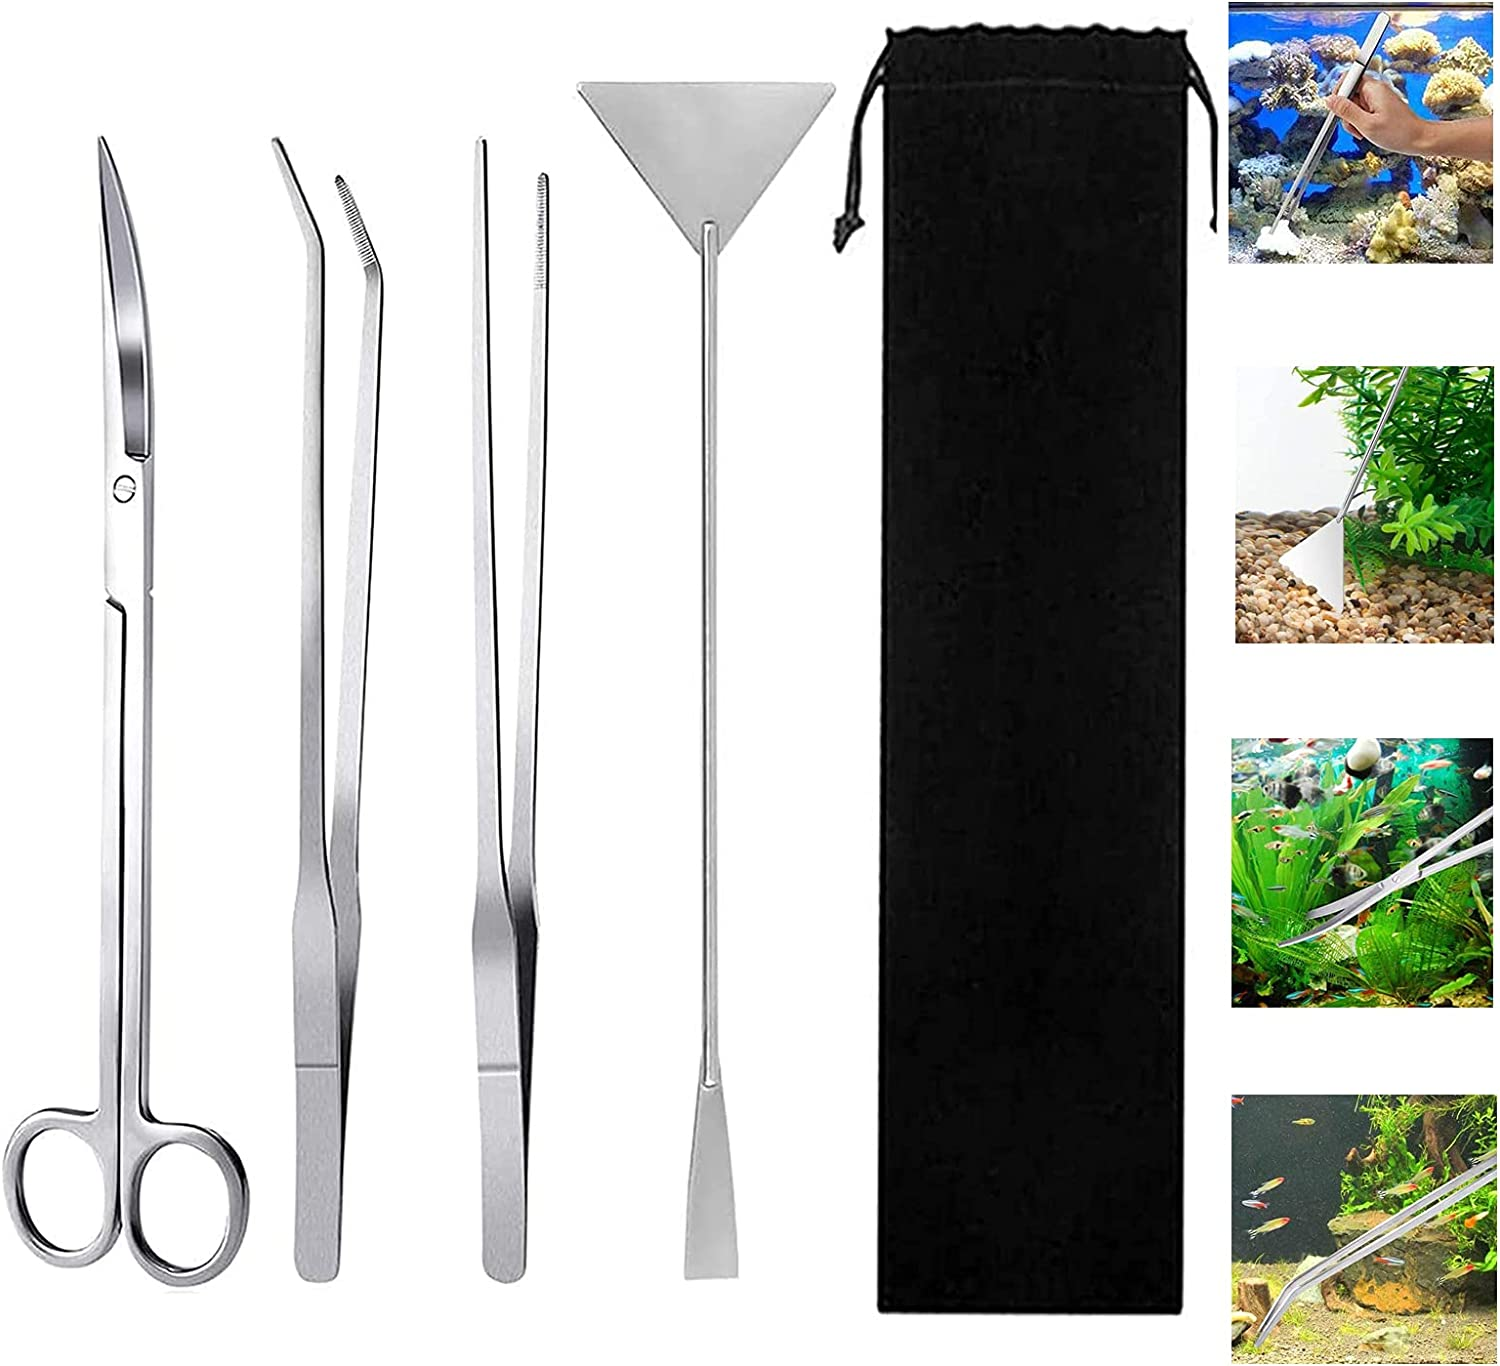 DFsucces New Free Shipping Aquarium Scissor Tweezers Tool 4 in A Steel Stainless 1 Omaha Mall